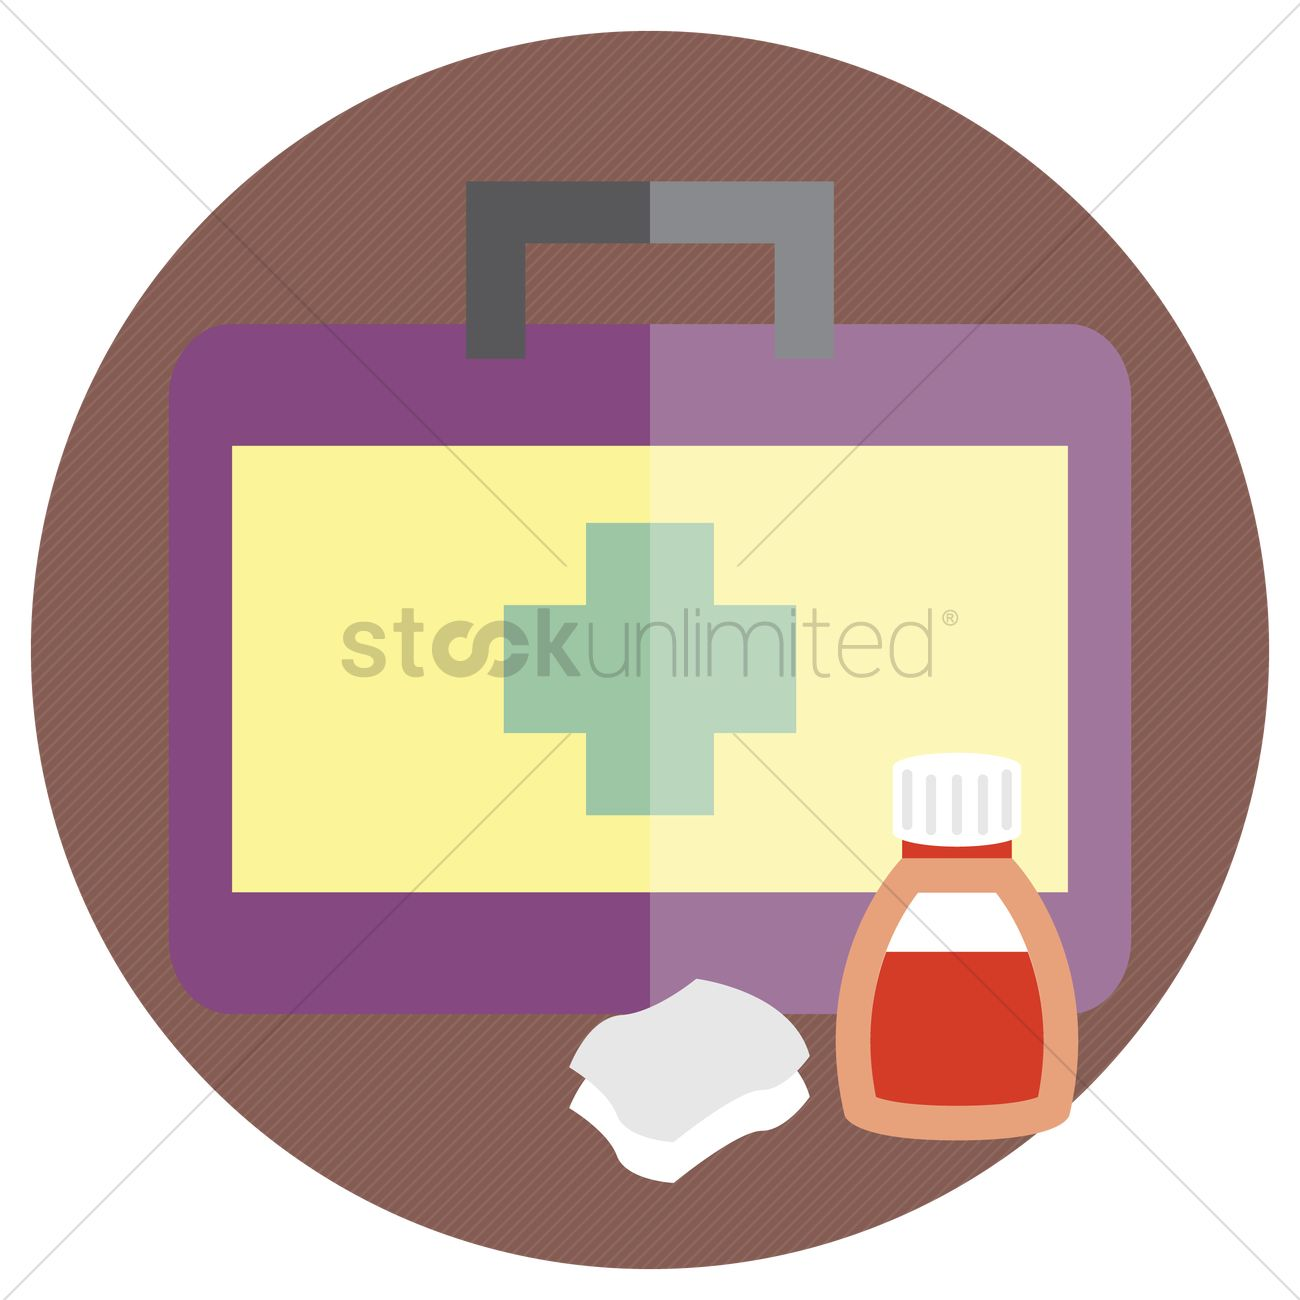 Free First aid kit Vector Image - 1264989 | StockUnlimited